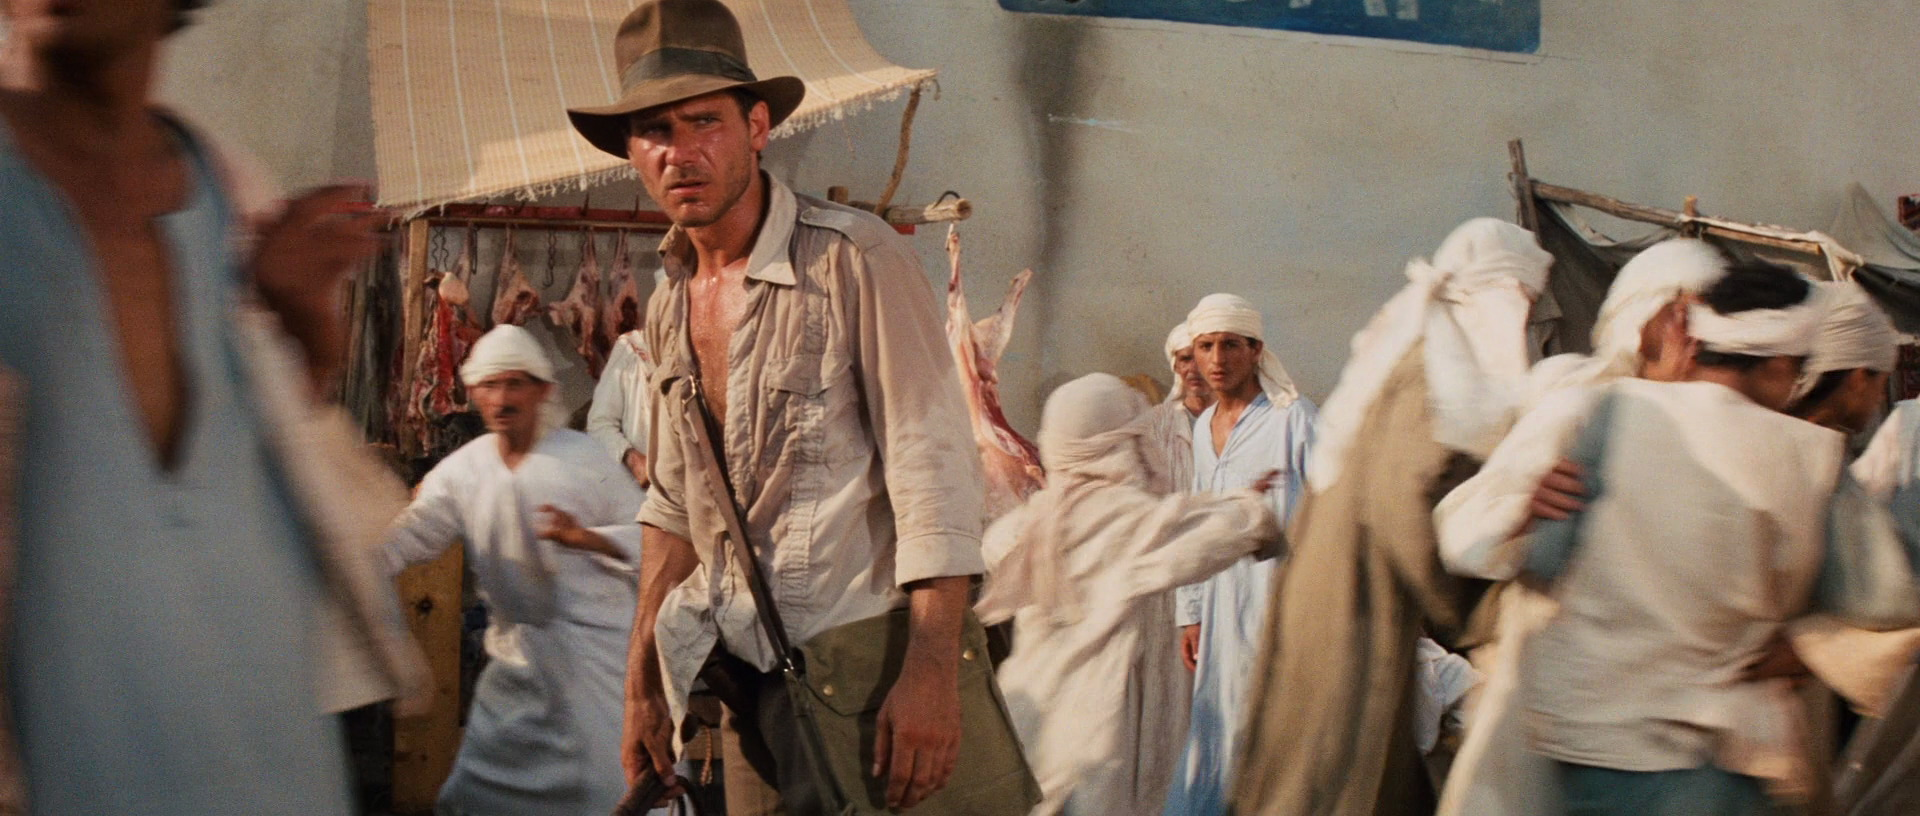 raiders-lost-ark-movie-screencaps.com-4791.jpg